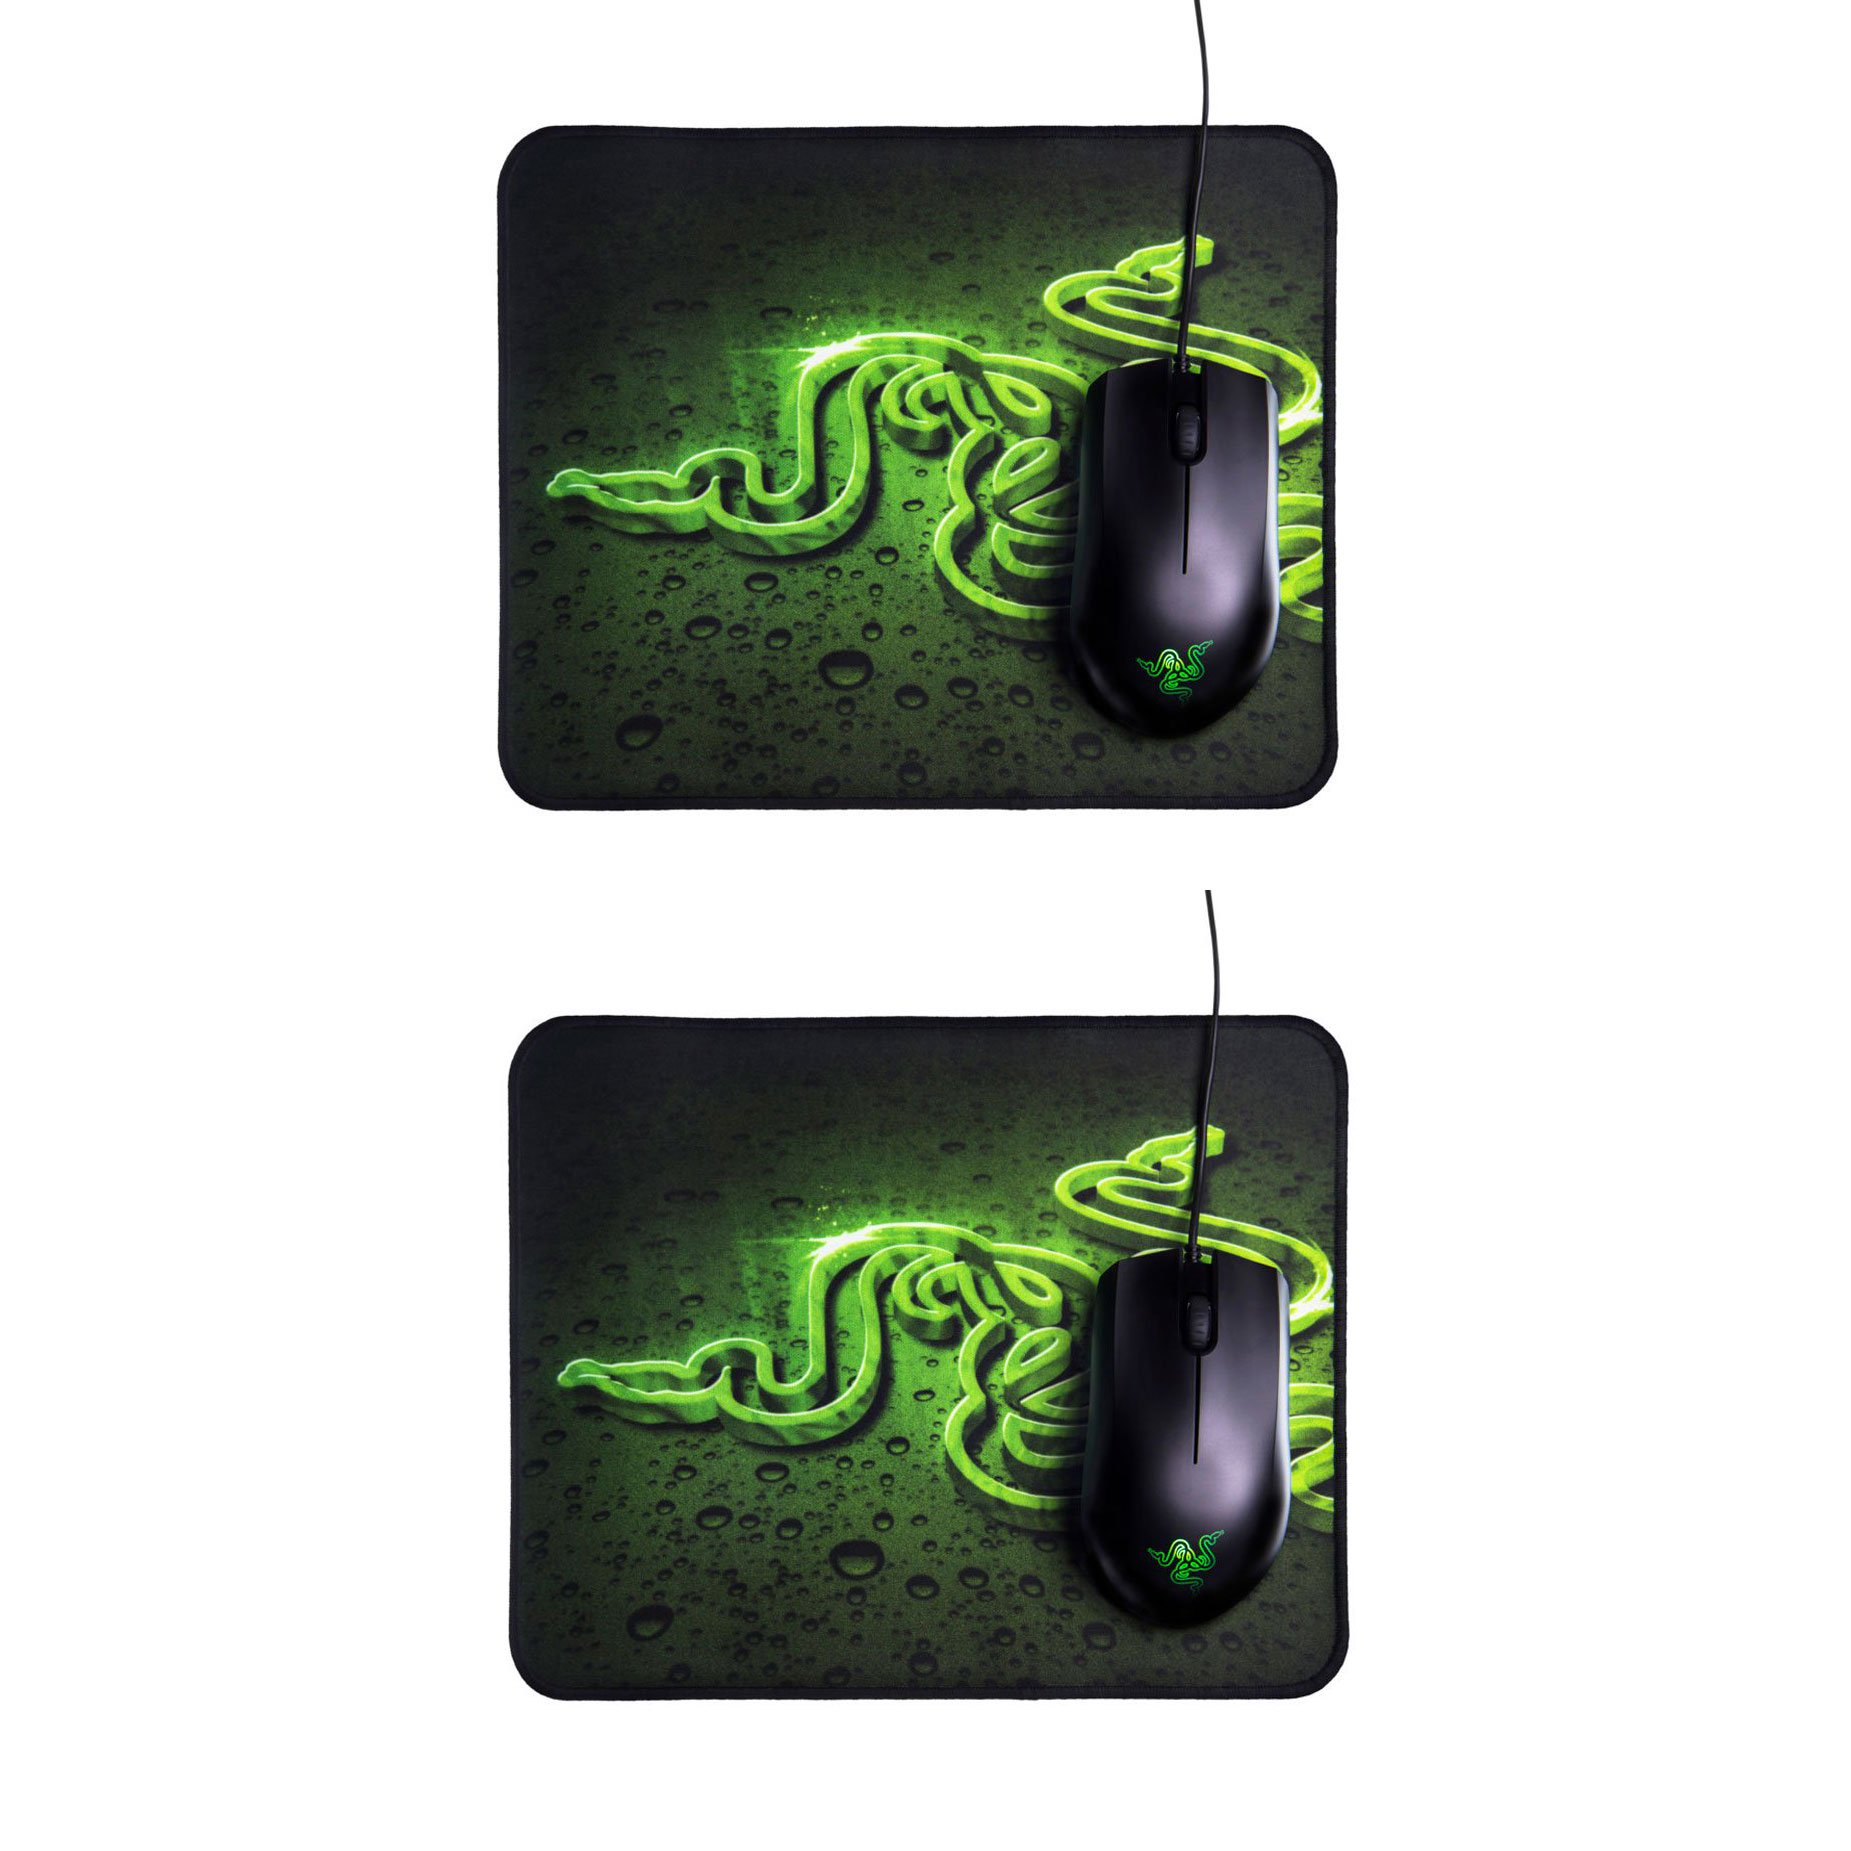 Razer Abyssus 2000 DPI Wired Mouse and Goliathus High Texture Mouse Pad (2 Pack)